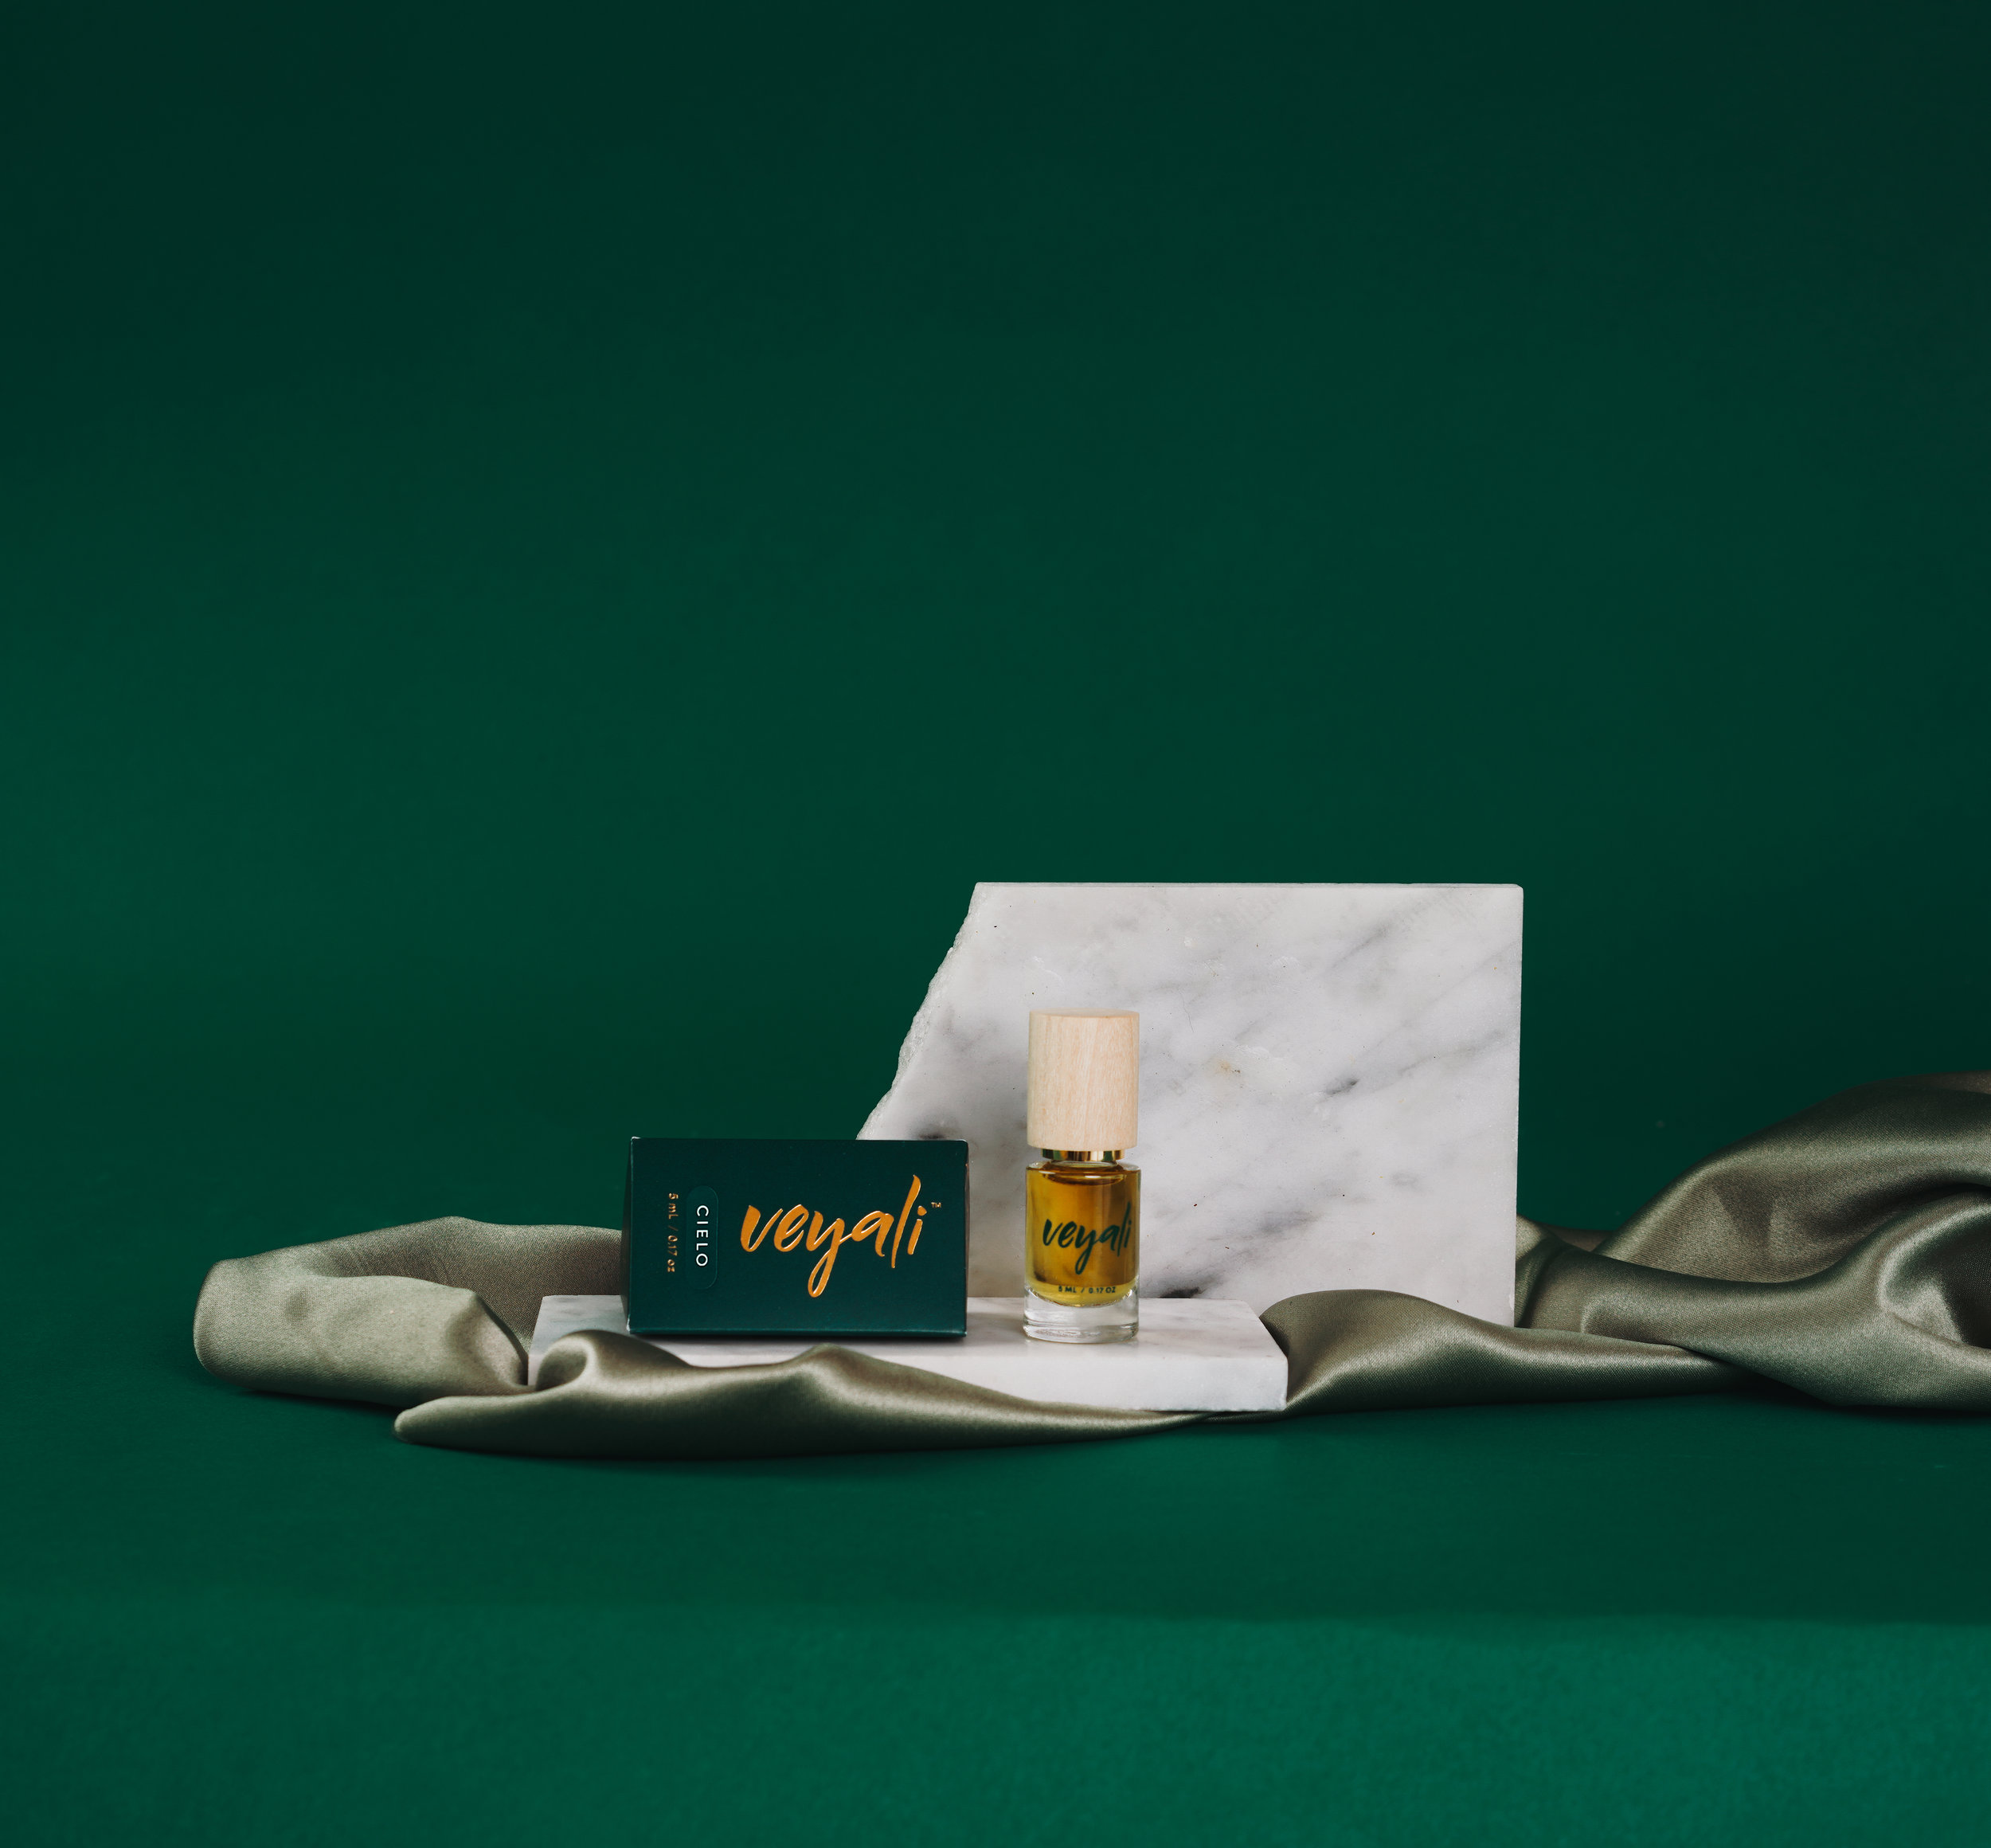 art director direction styling still life photography veyali field guide